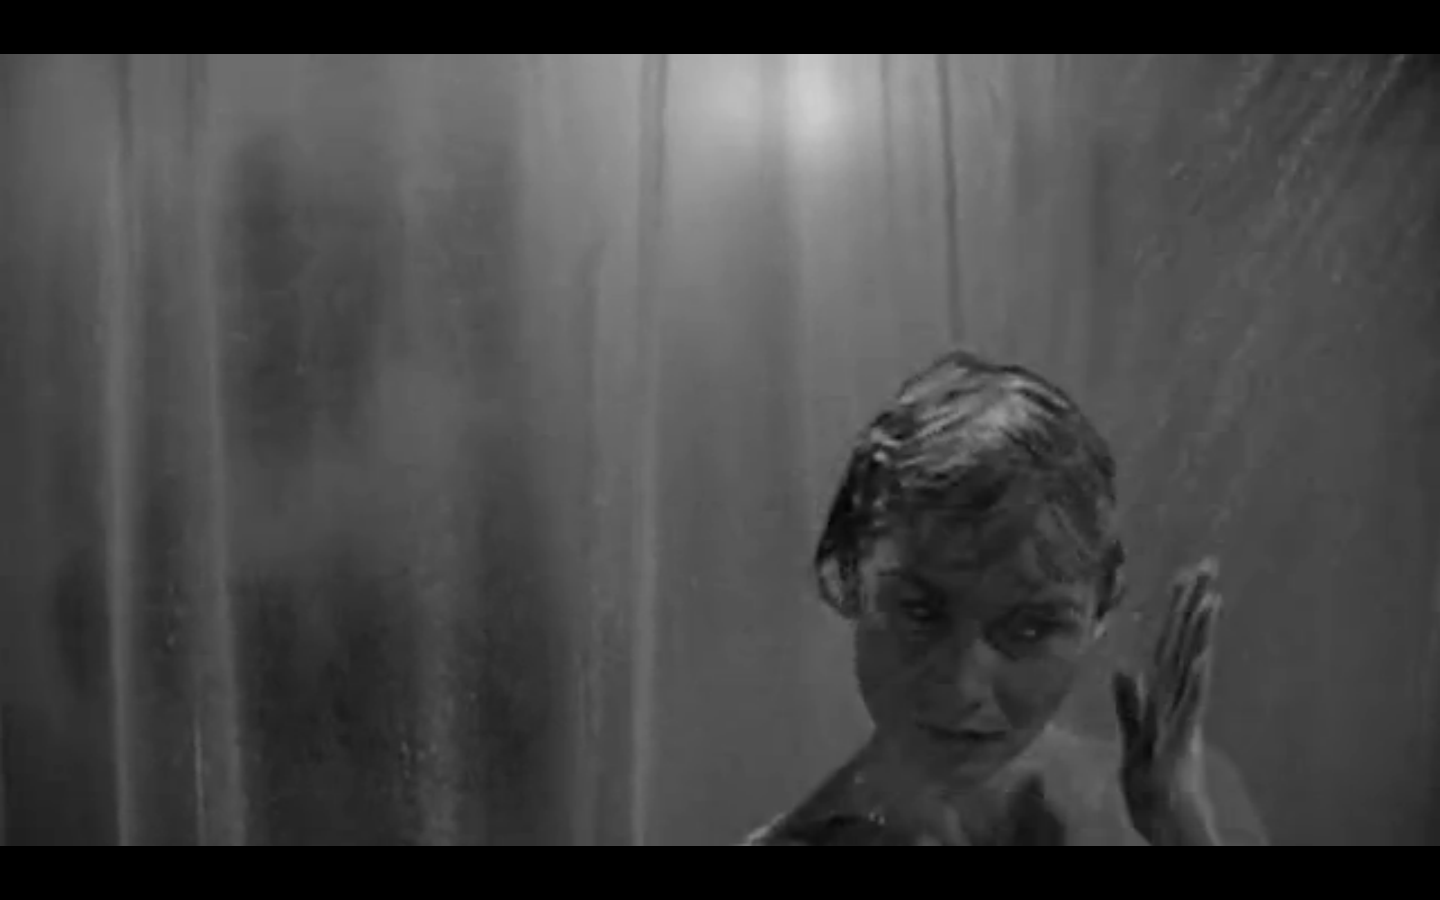 psycho shower scene analysis Analysis of psycho - shower scene 1 analyzing 'psycho' - shower scene afreen shahid 13t 2 how does hitchcock create suspense & horror.